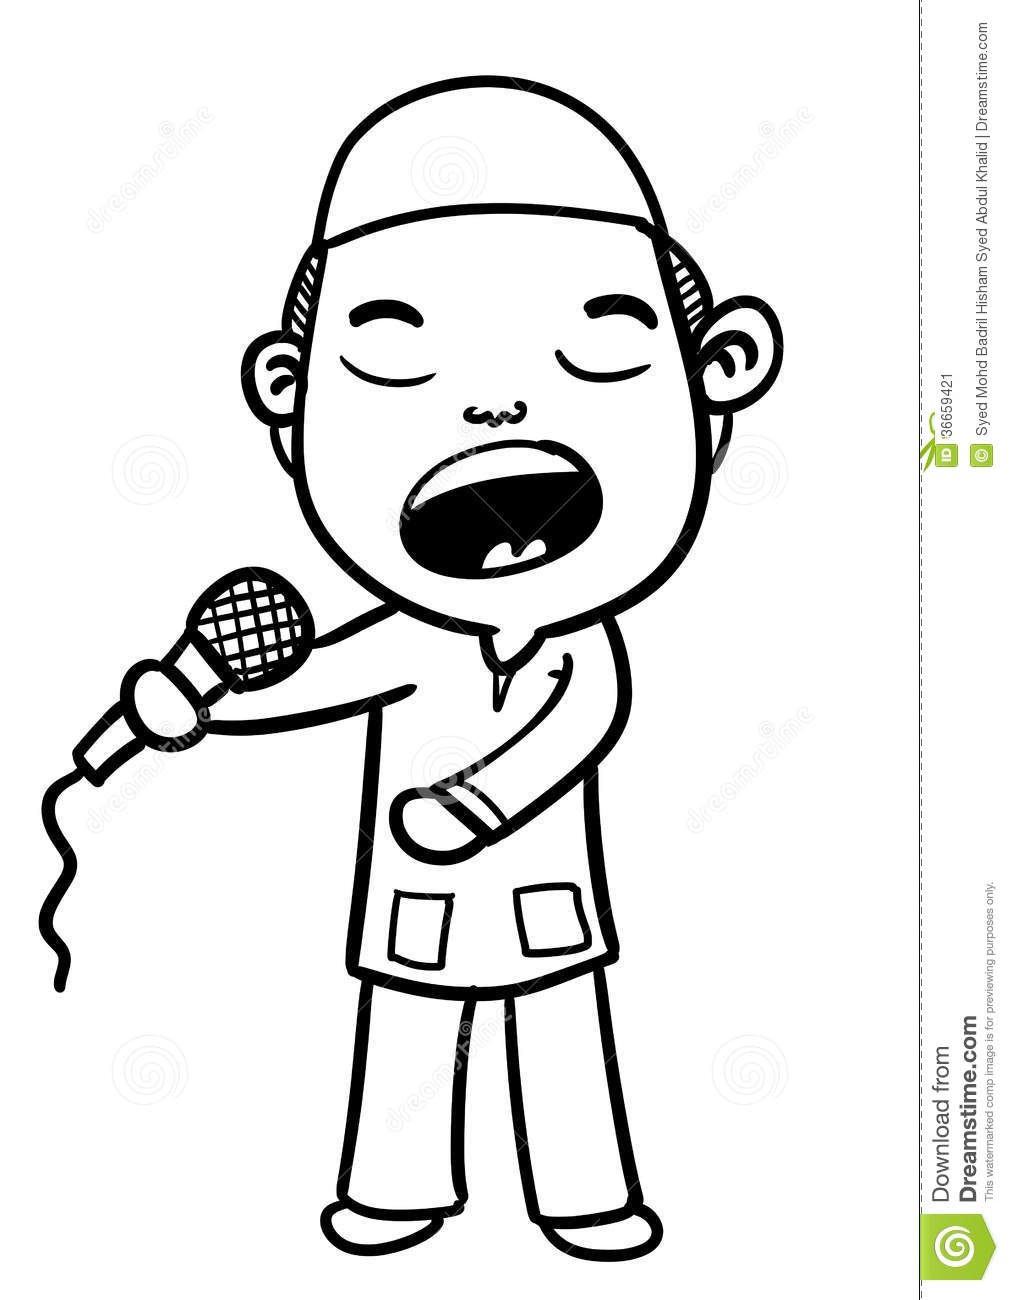 Sketch of boy singing with passion and grab the microphone.